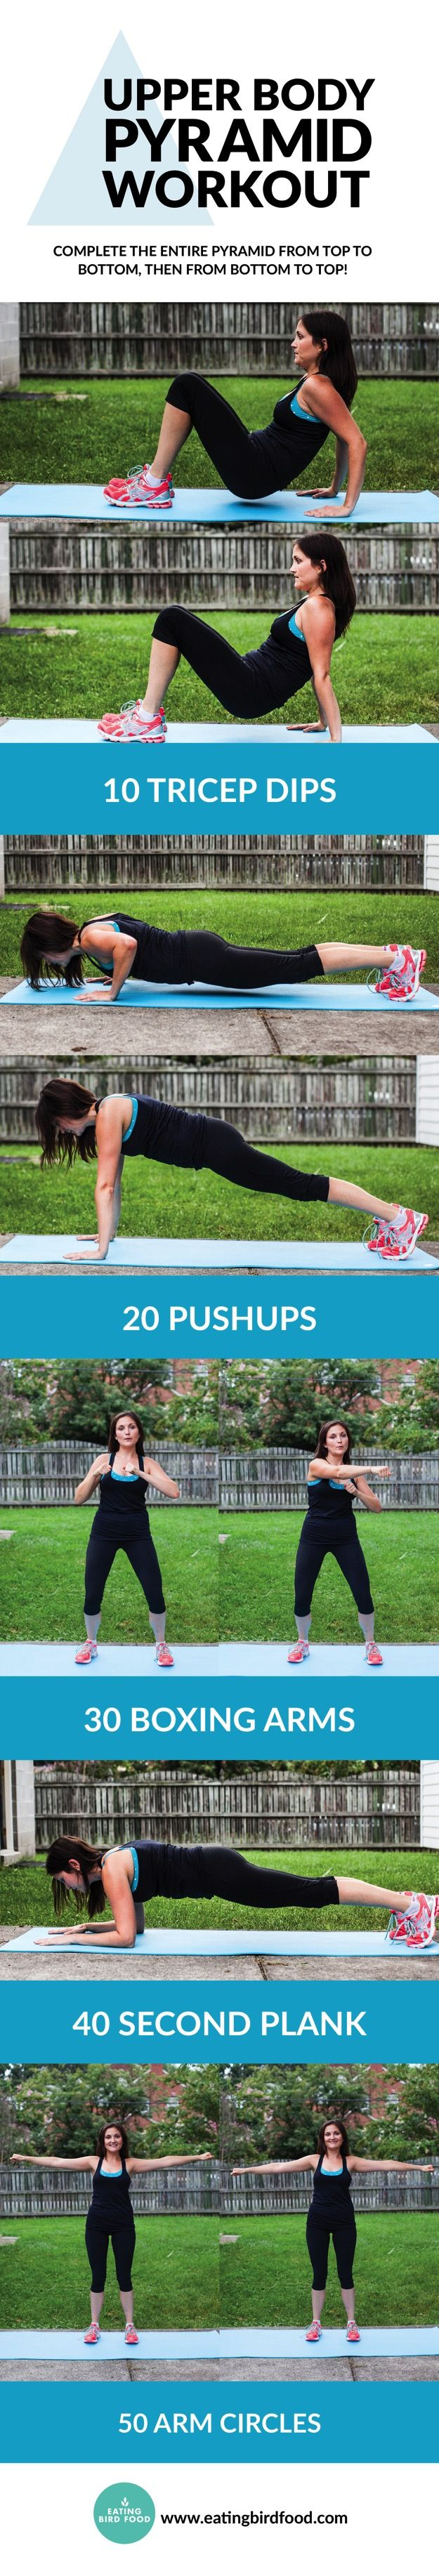 Upper Body Pyramid Workout Things I like Pinterest Workout